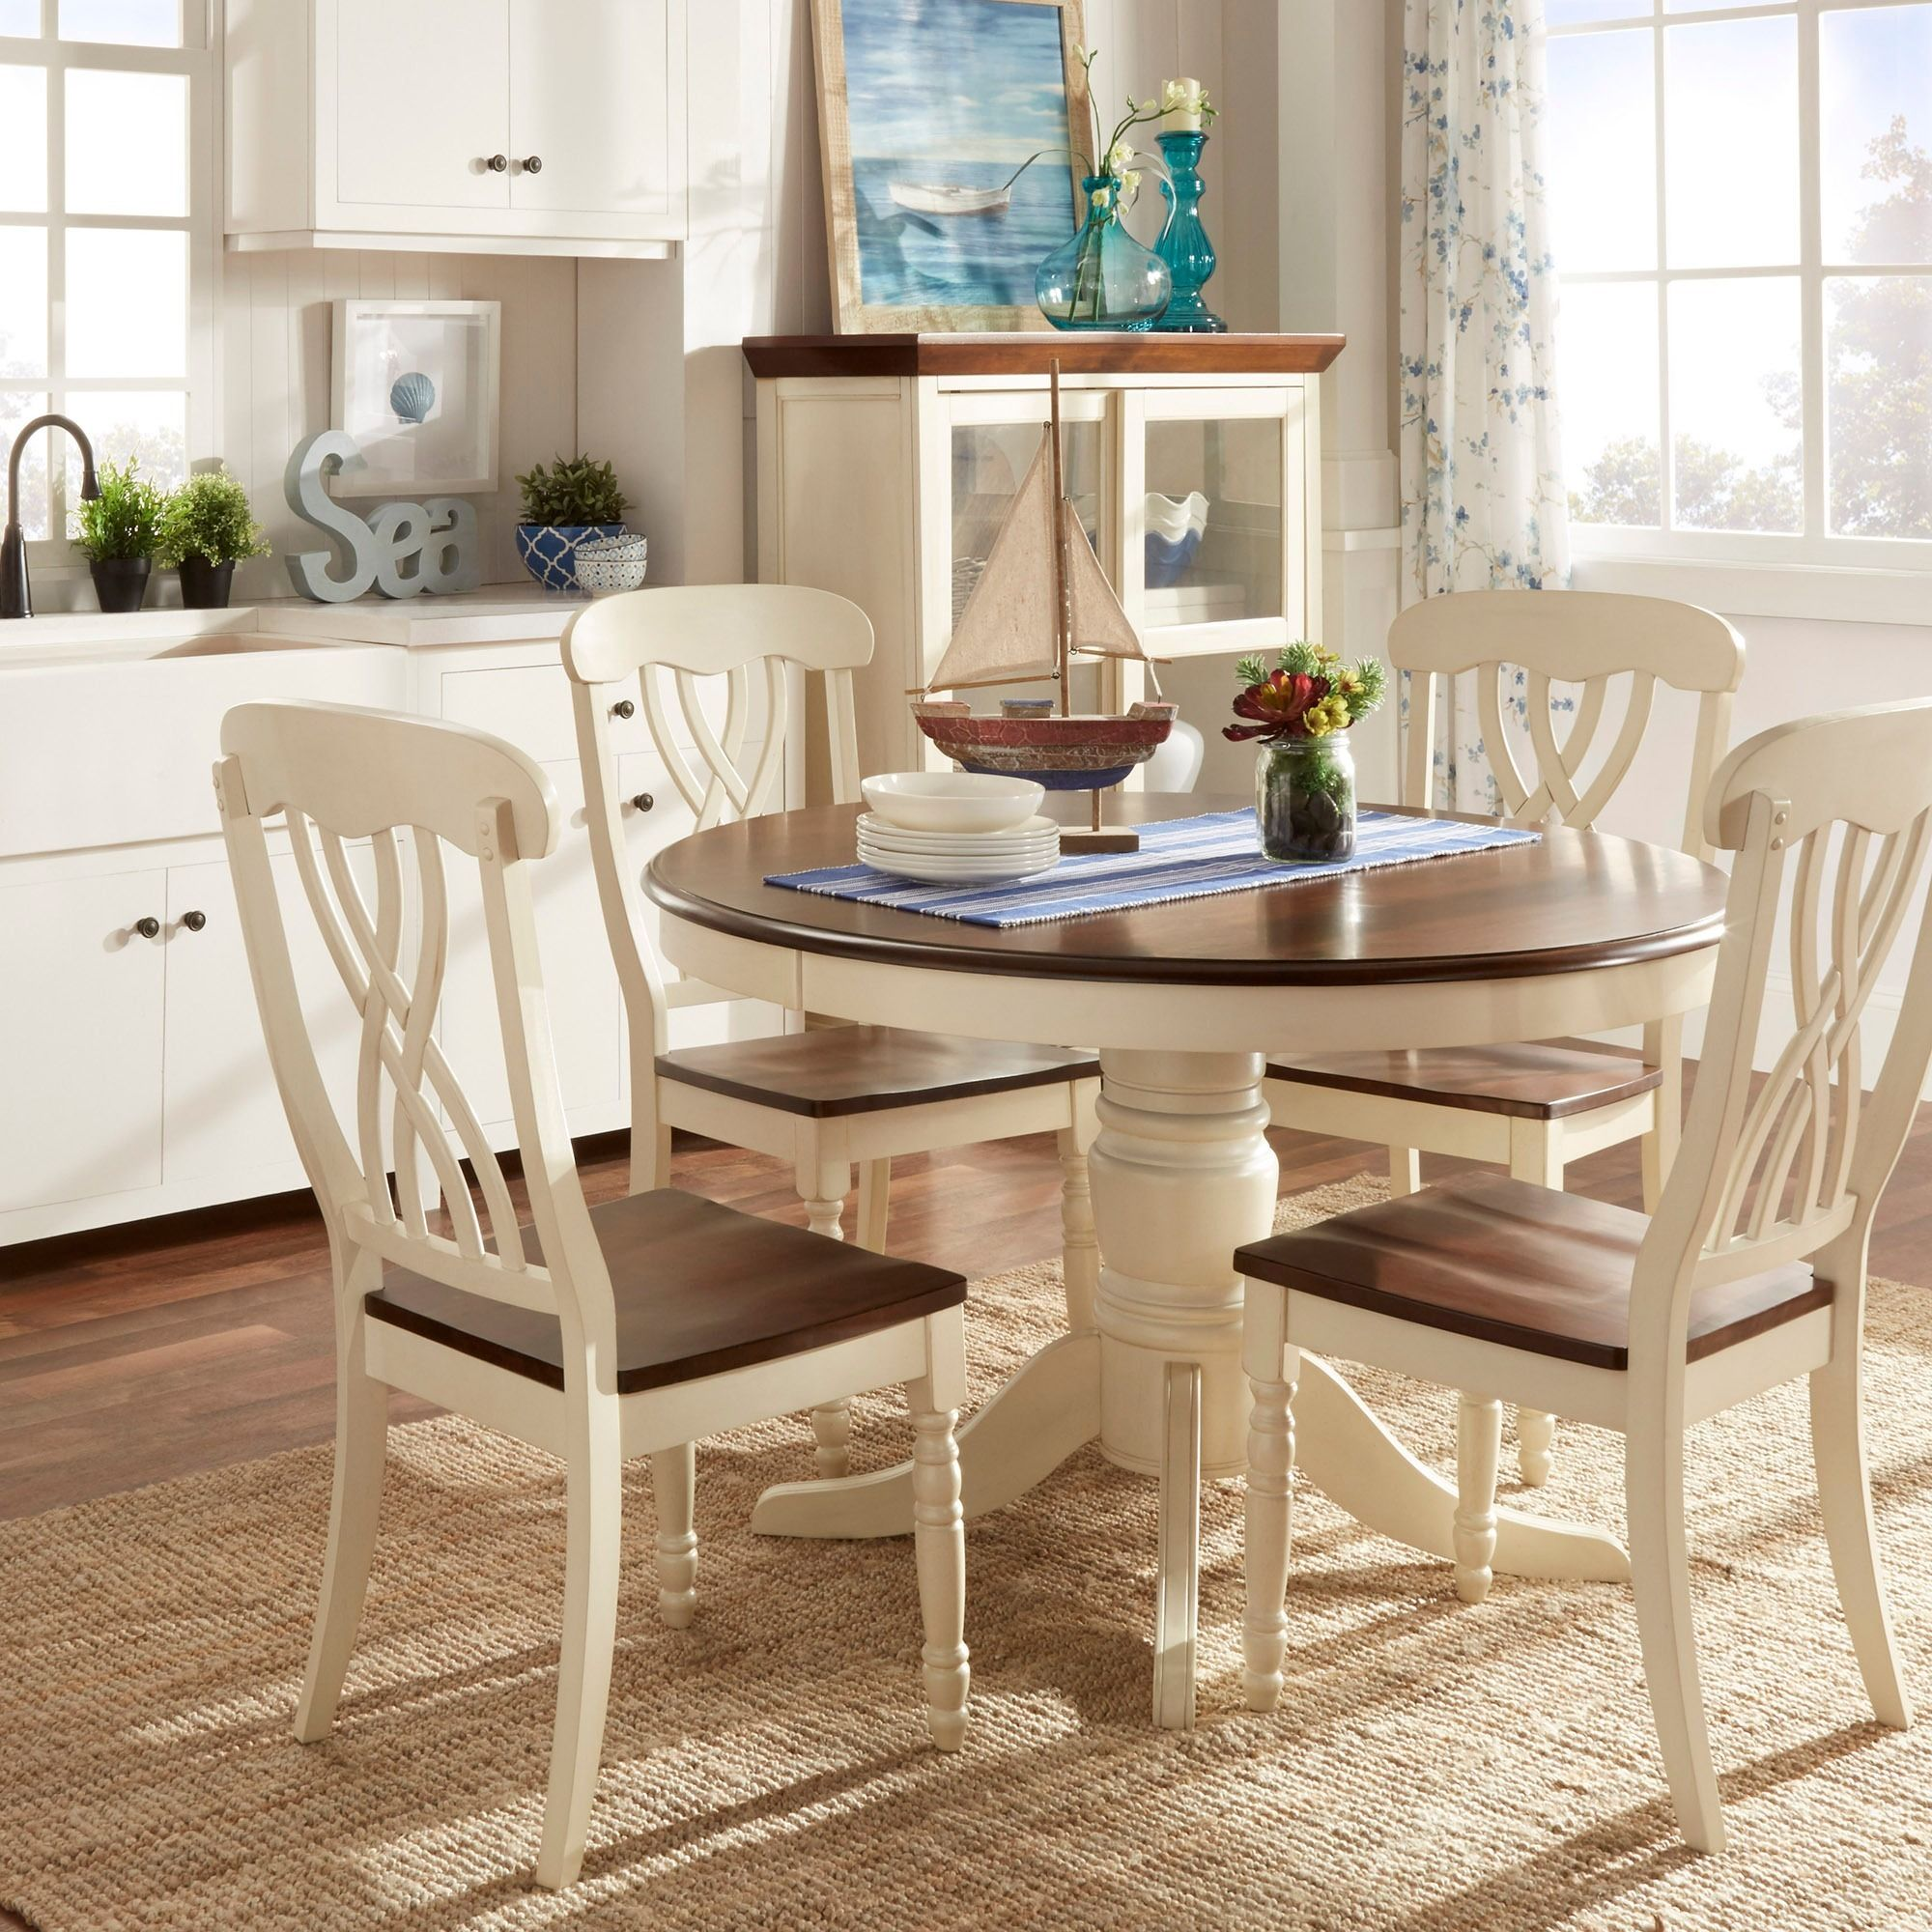 The design of this 5 piece dining set from mackenzie for White kitchen dining chairs